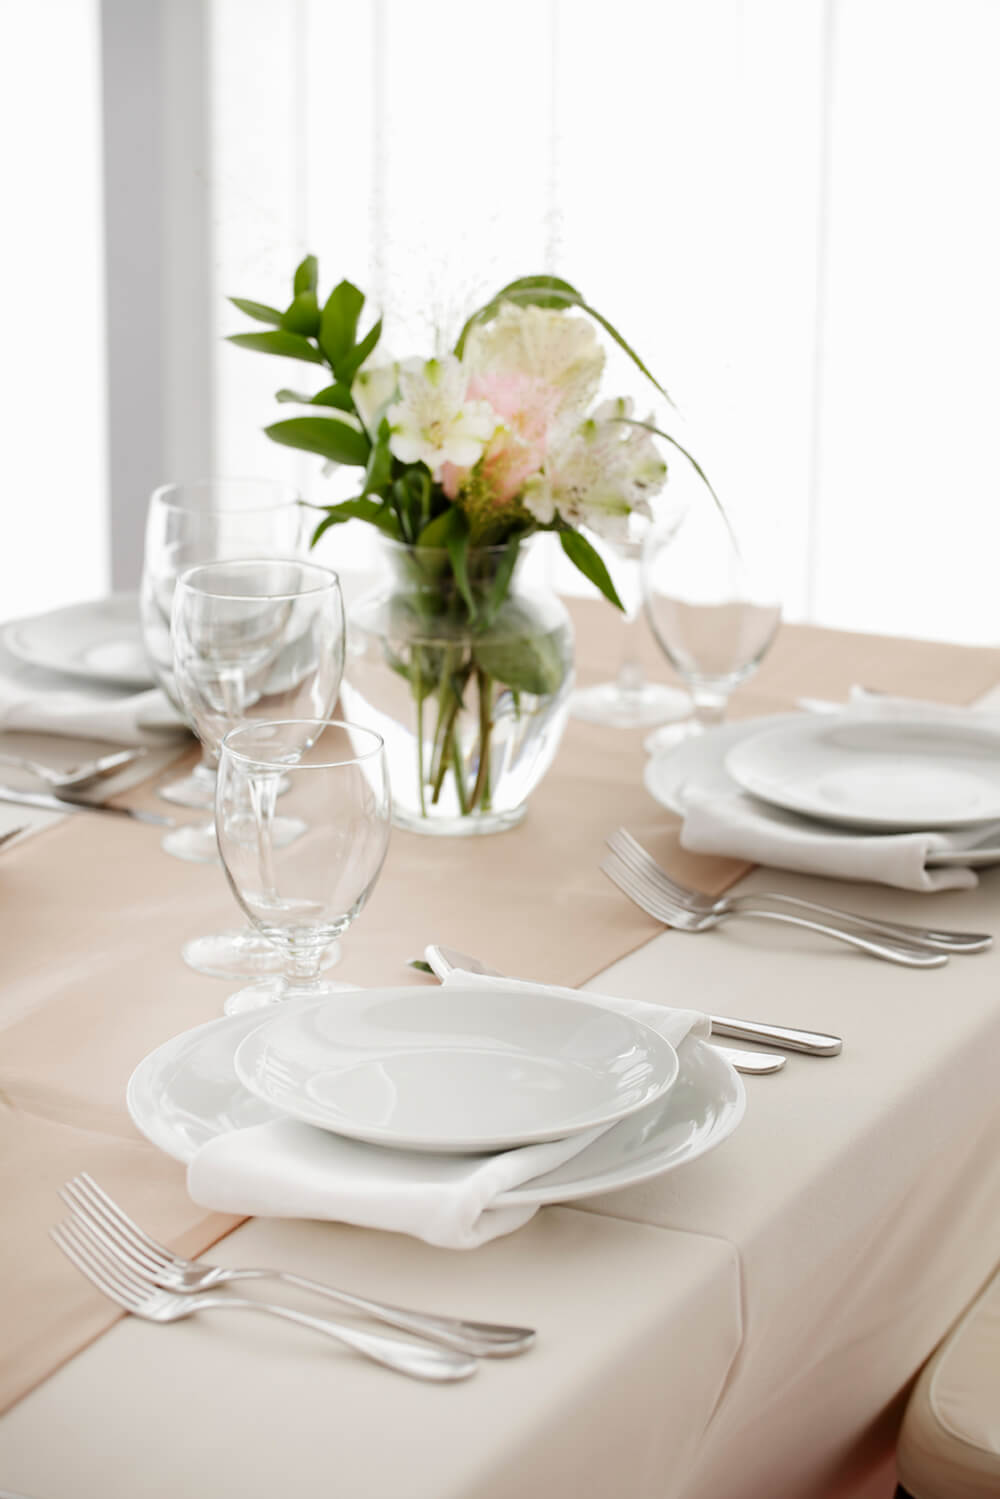 An off-white runner is layered on top of the white tablecloth. The slight change in color keeps this all white arrangement from blending together.